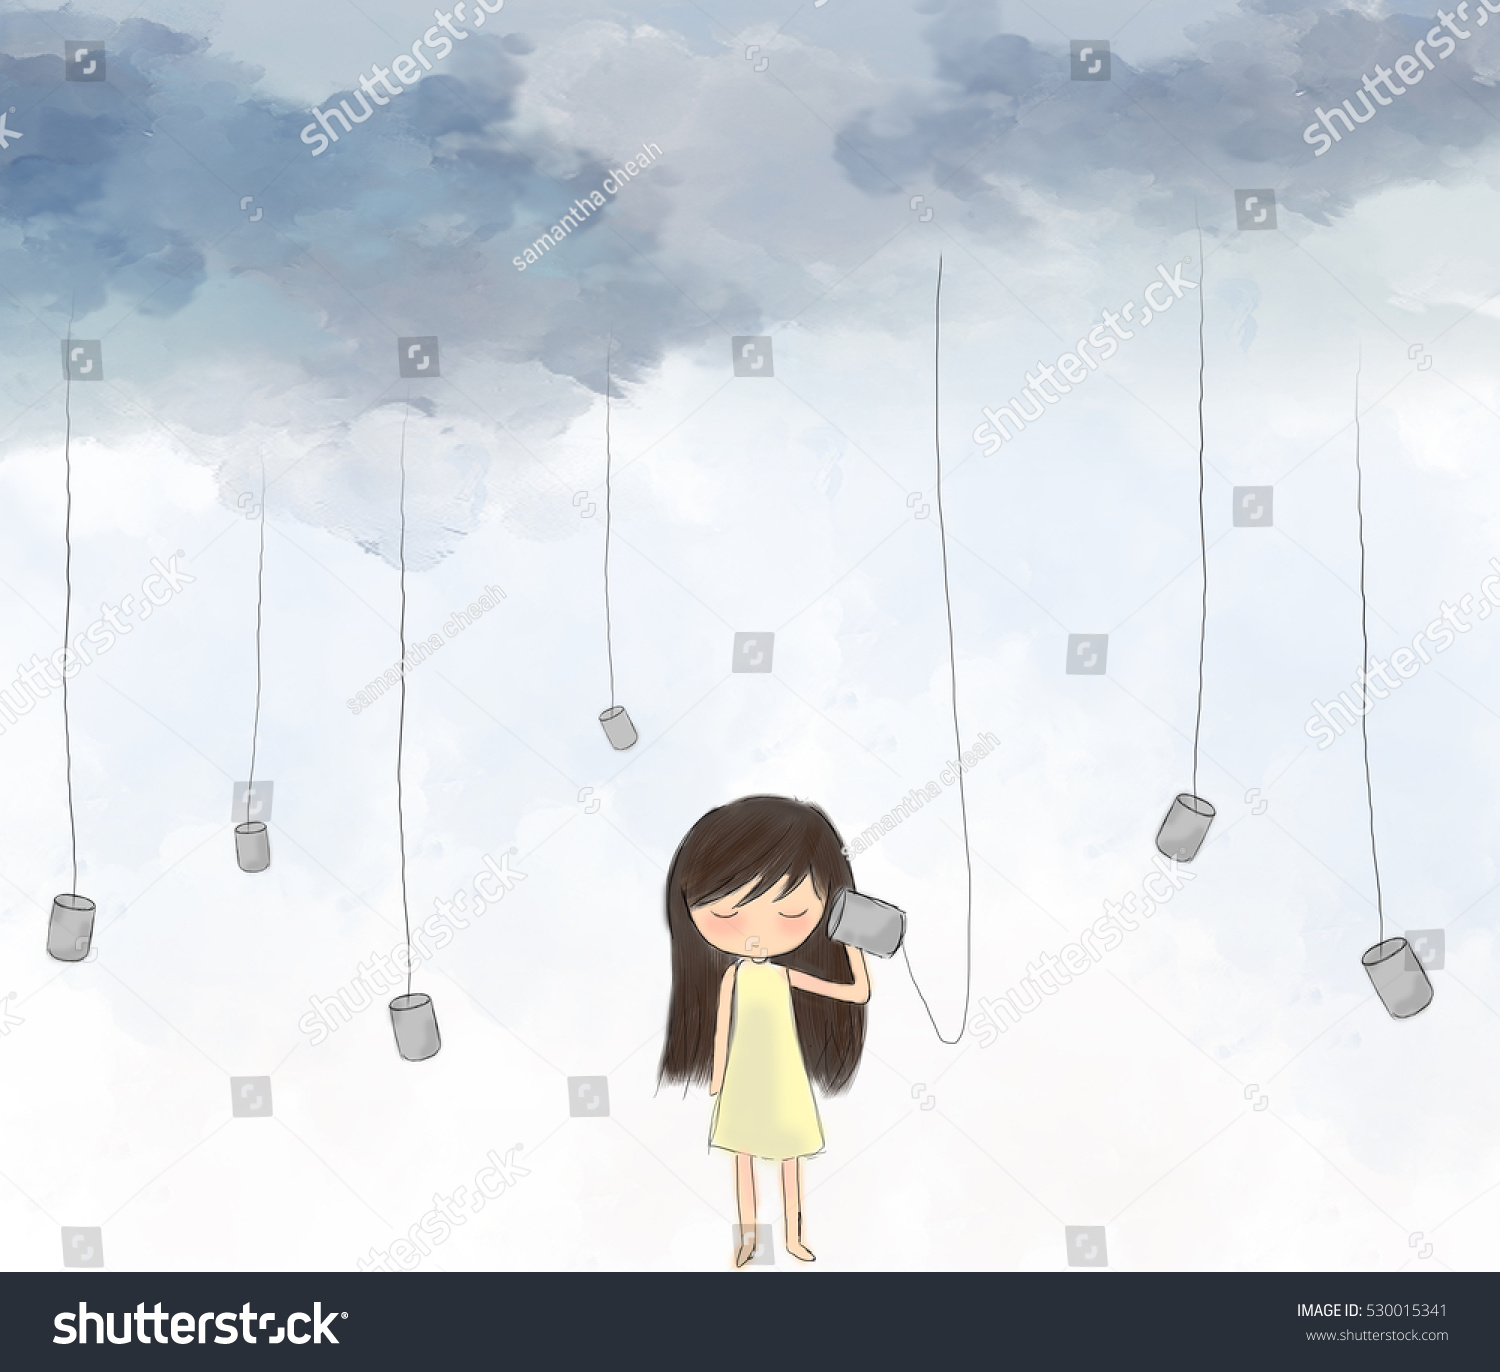 Illustration drawing of sad lonely girl standing listening to cup hanging with string from sky painting of water color graphic sky idea of art listening